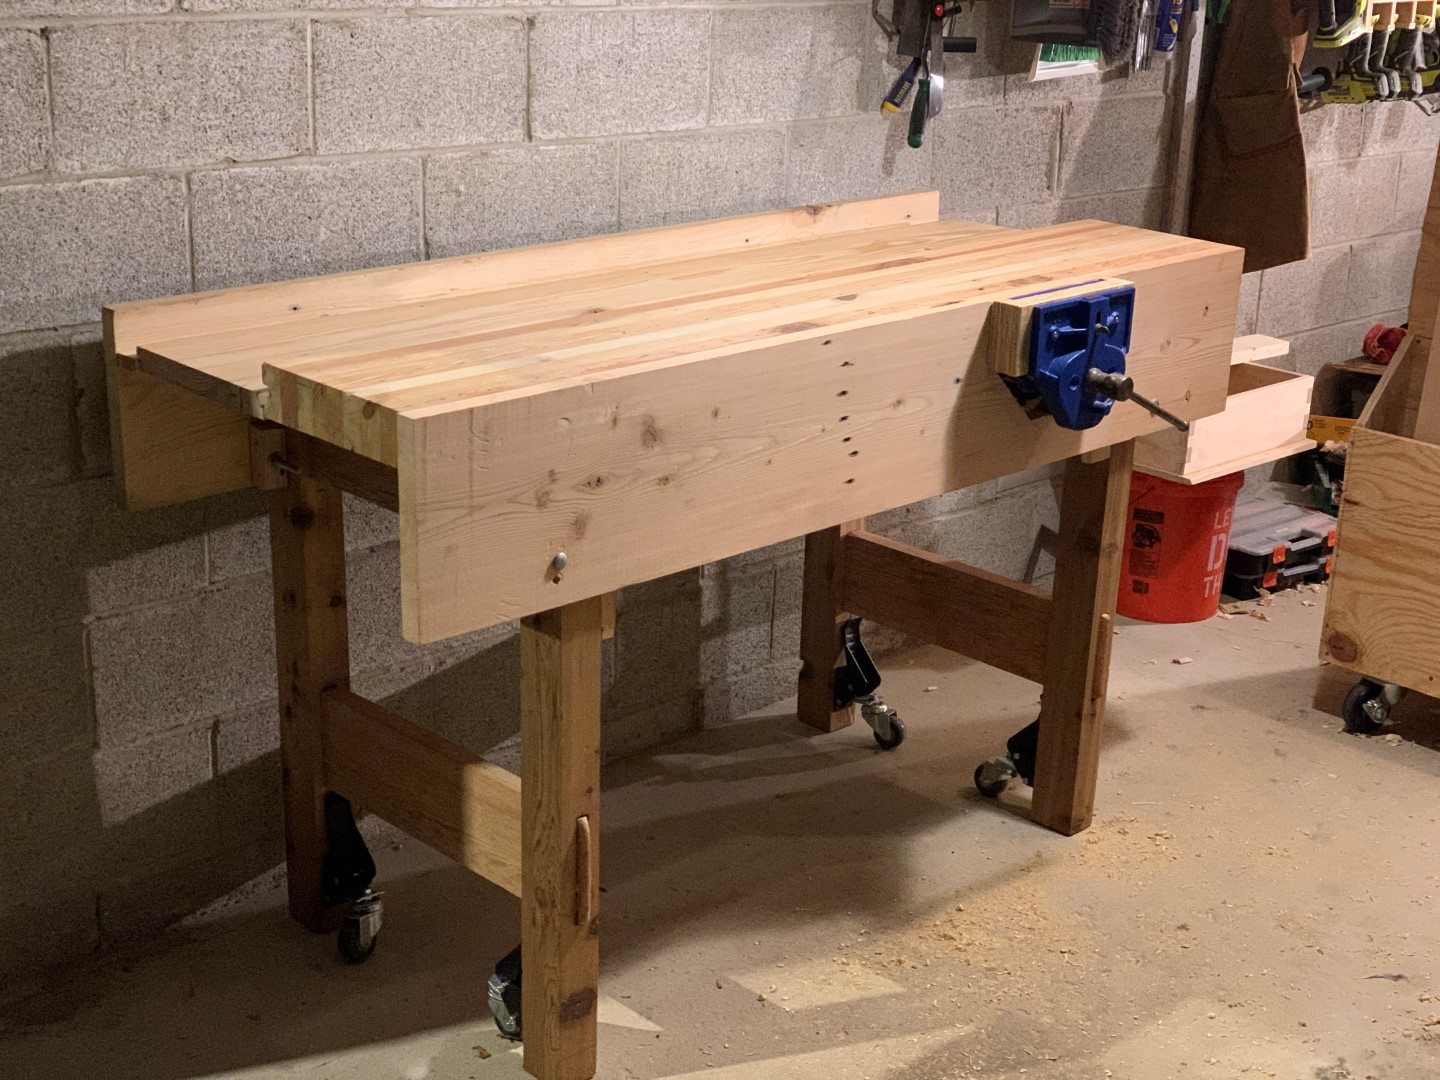 jelster-workbench-construction-1773